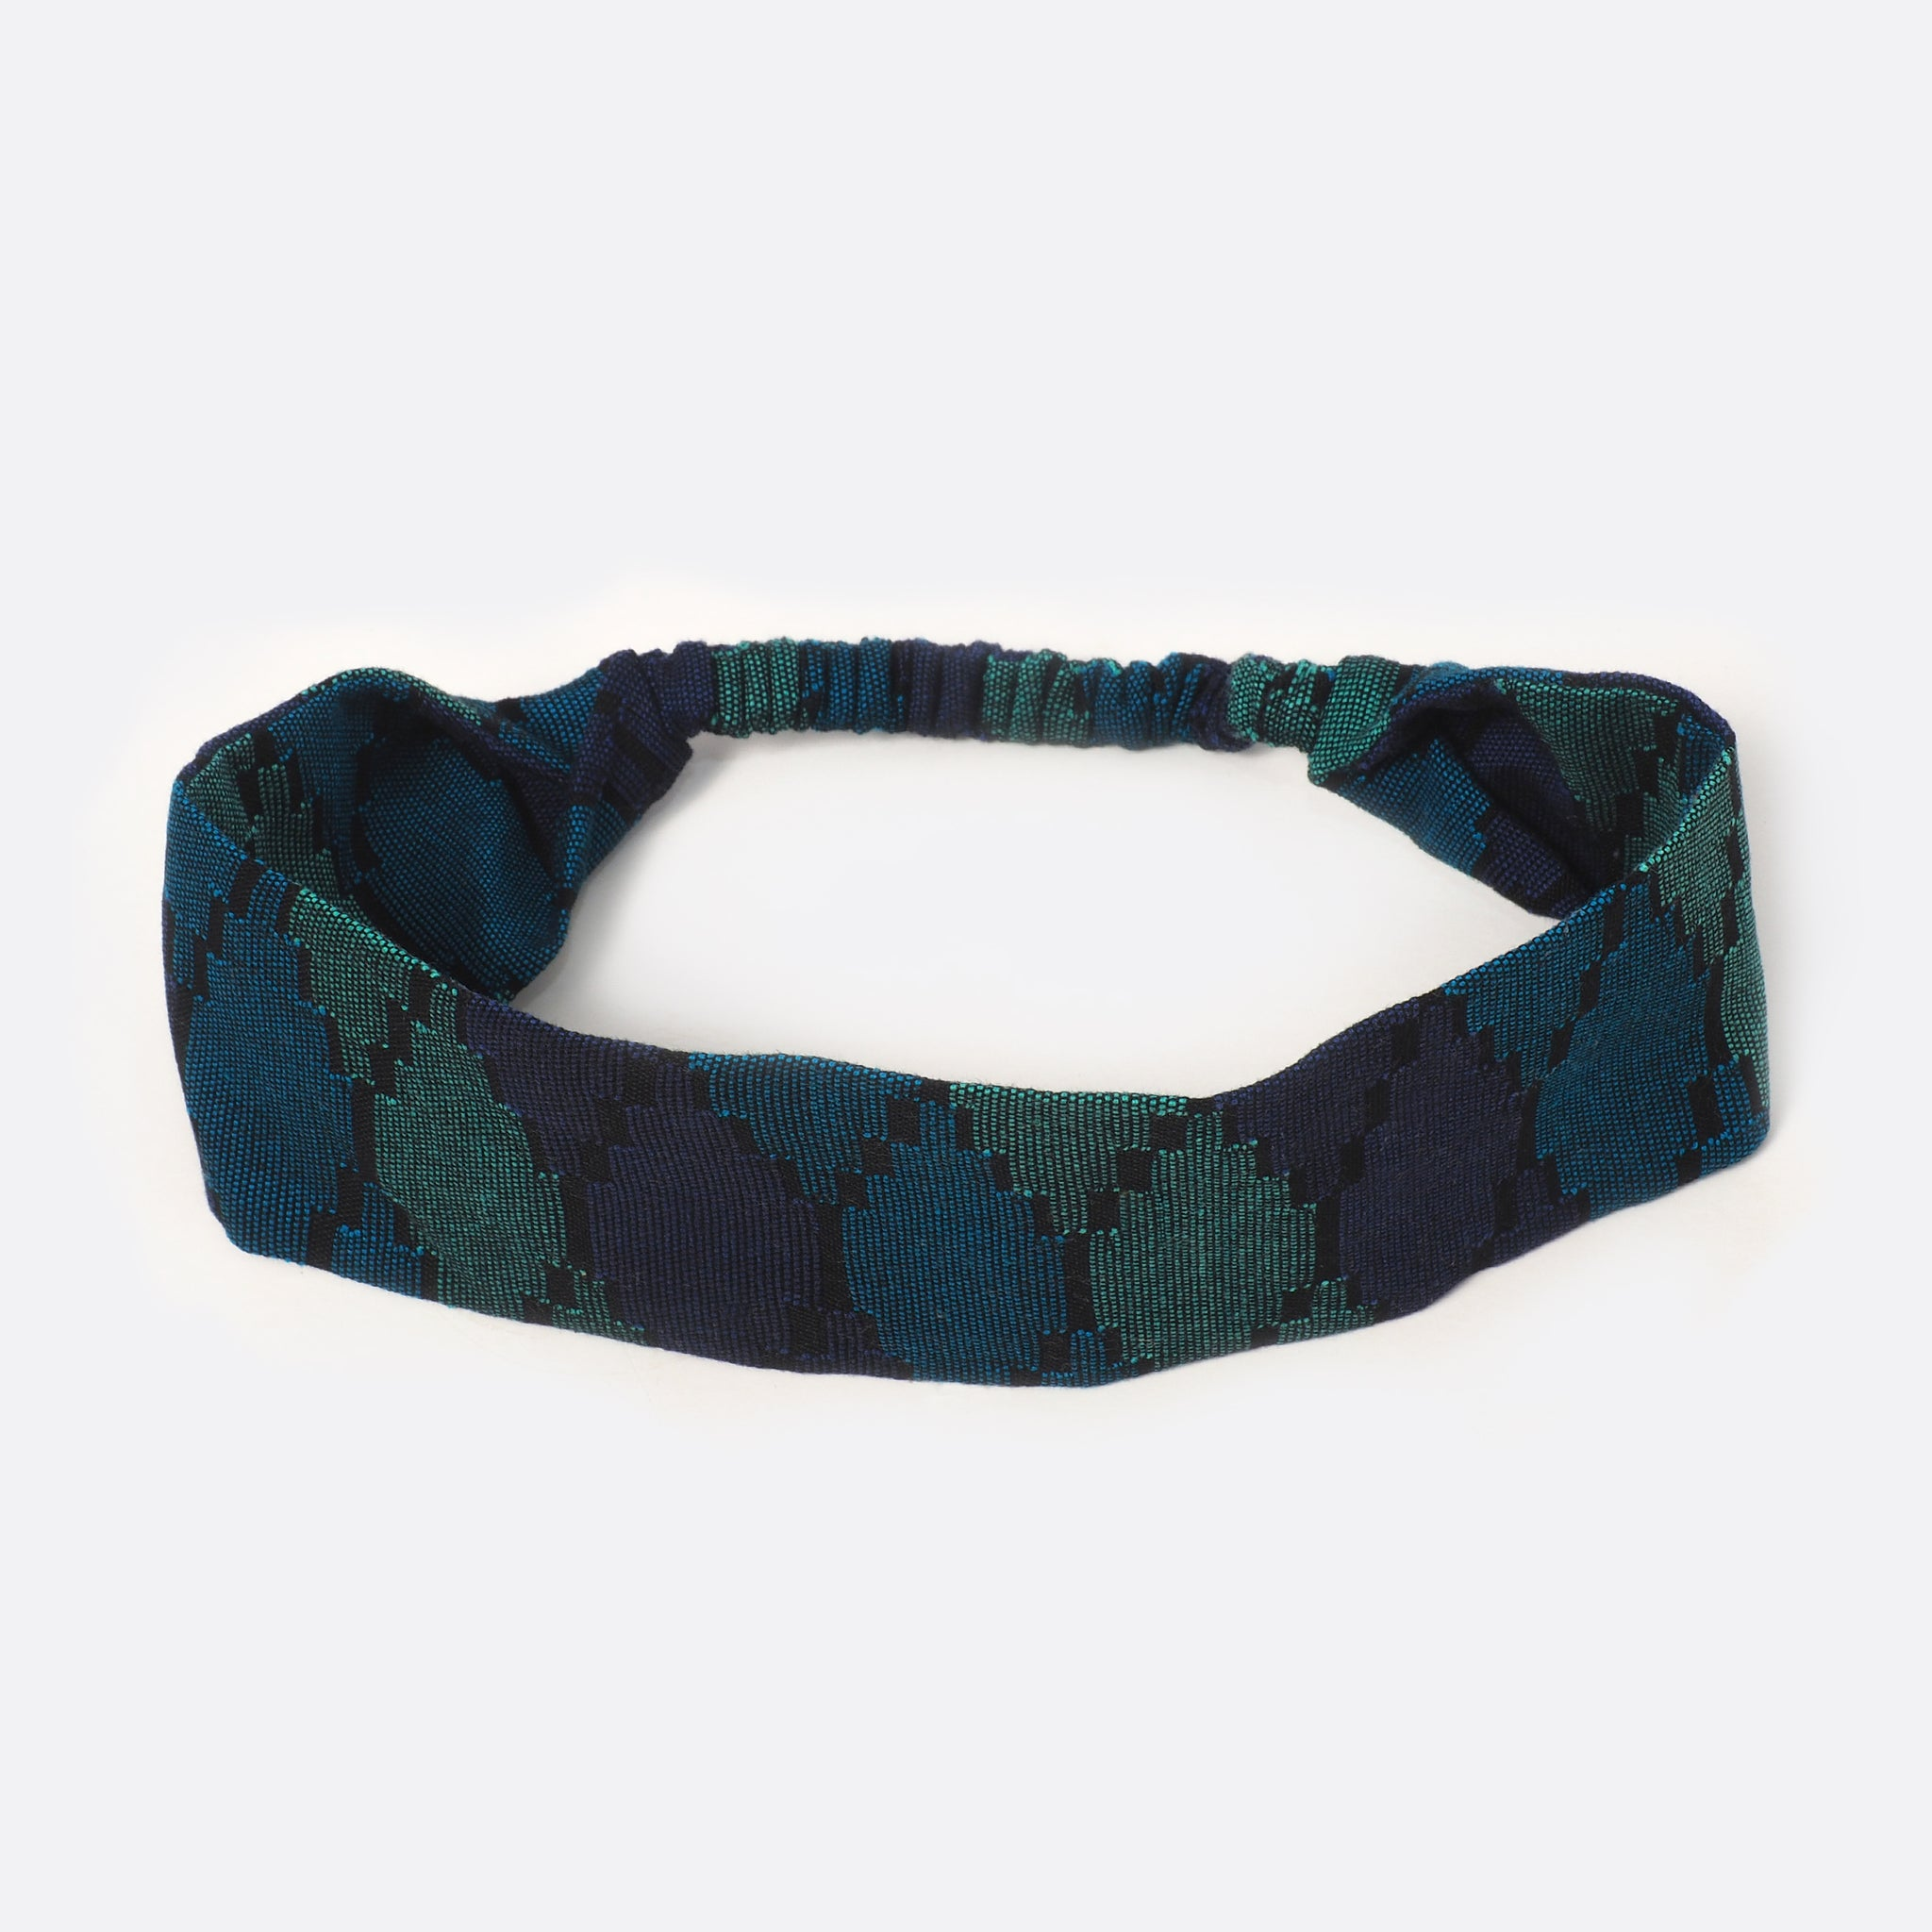 Top view of the Battiayo Deep Blue Sea headband. The handwoven traditional dhaka fabric has three different shades of blue and a bit black. The dhaka fabric has a geometric pattern and is handwoven by amazing women. The pattern looks like honeycombs.